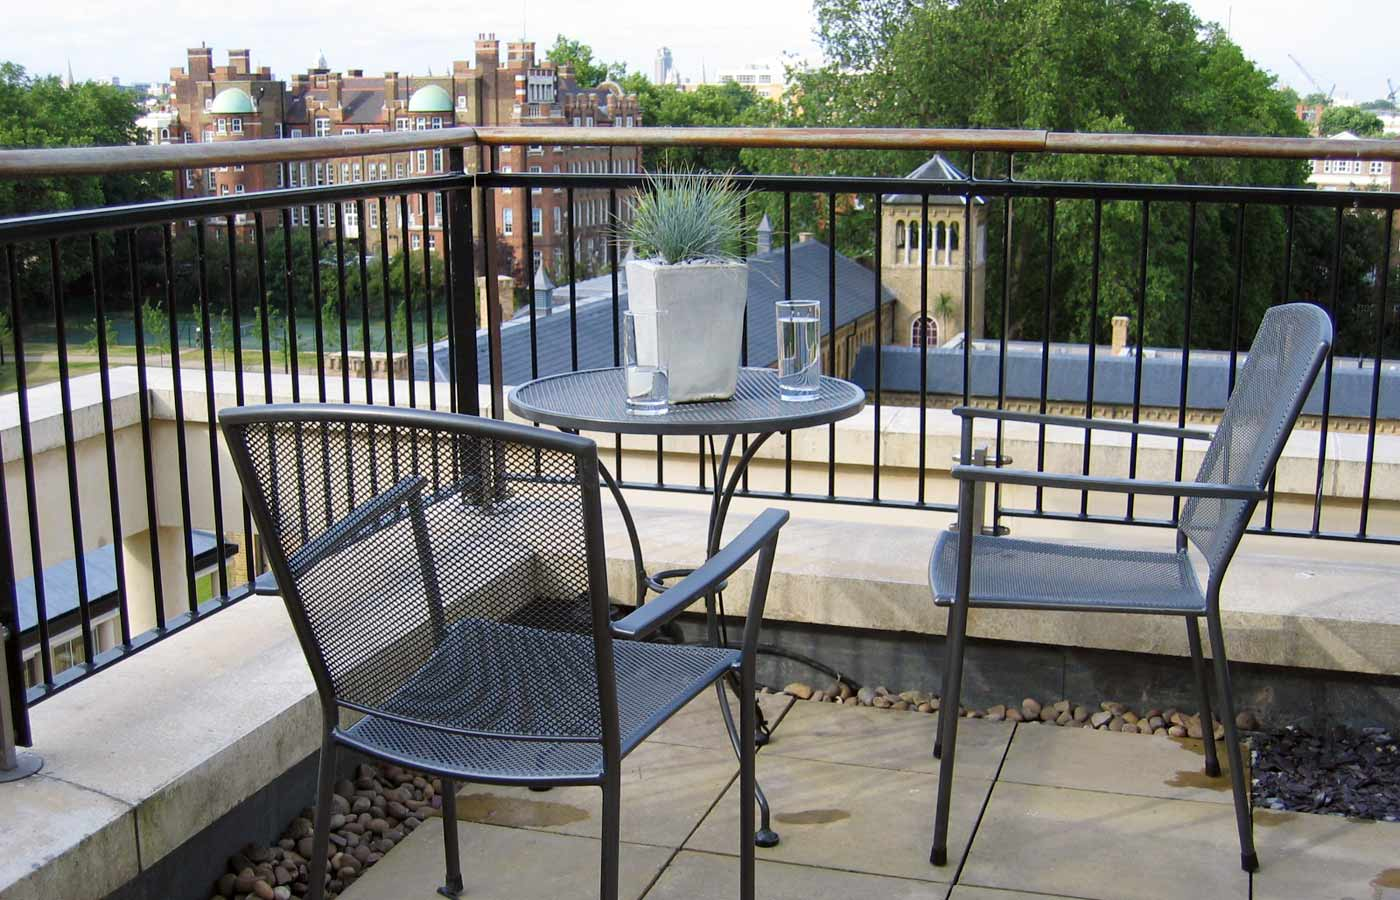 Roof terrace design fulham london for Terrace roof design india